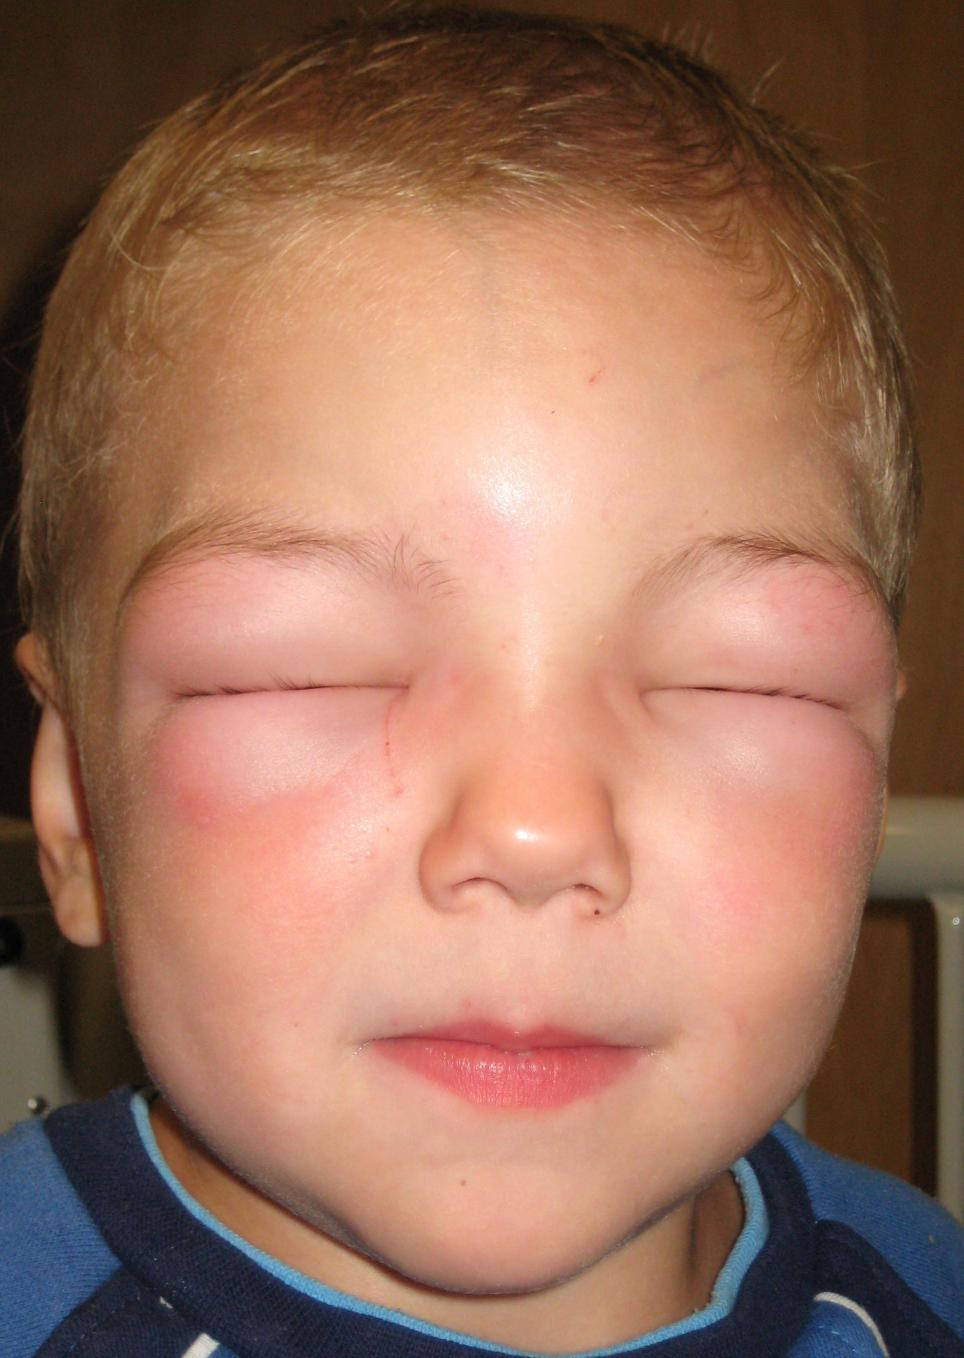 Allergic reaction on face: Treatment, causes, and symptoms